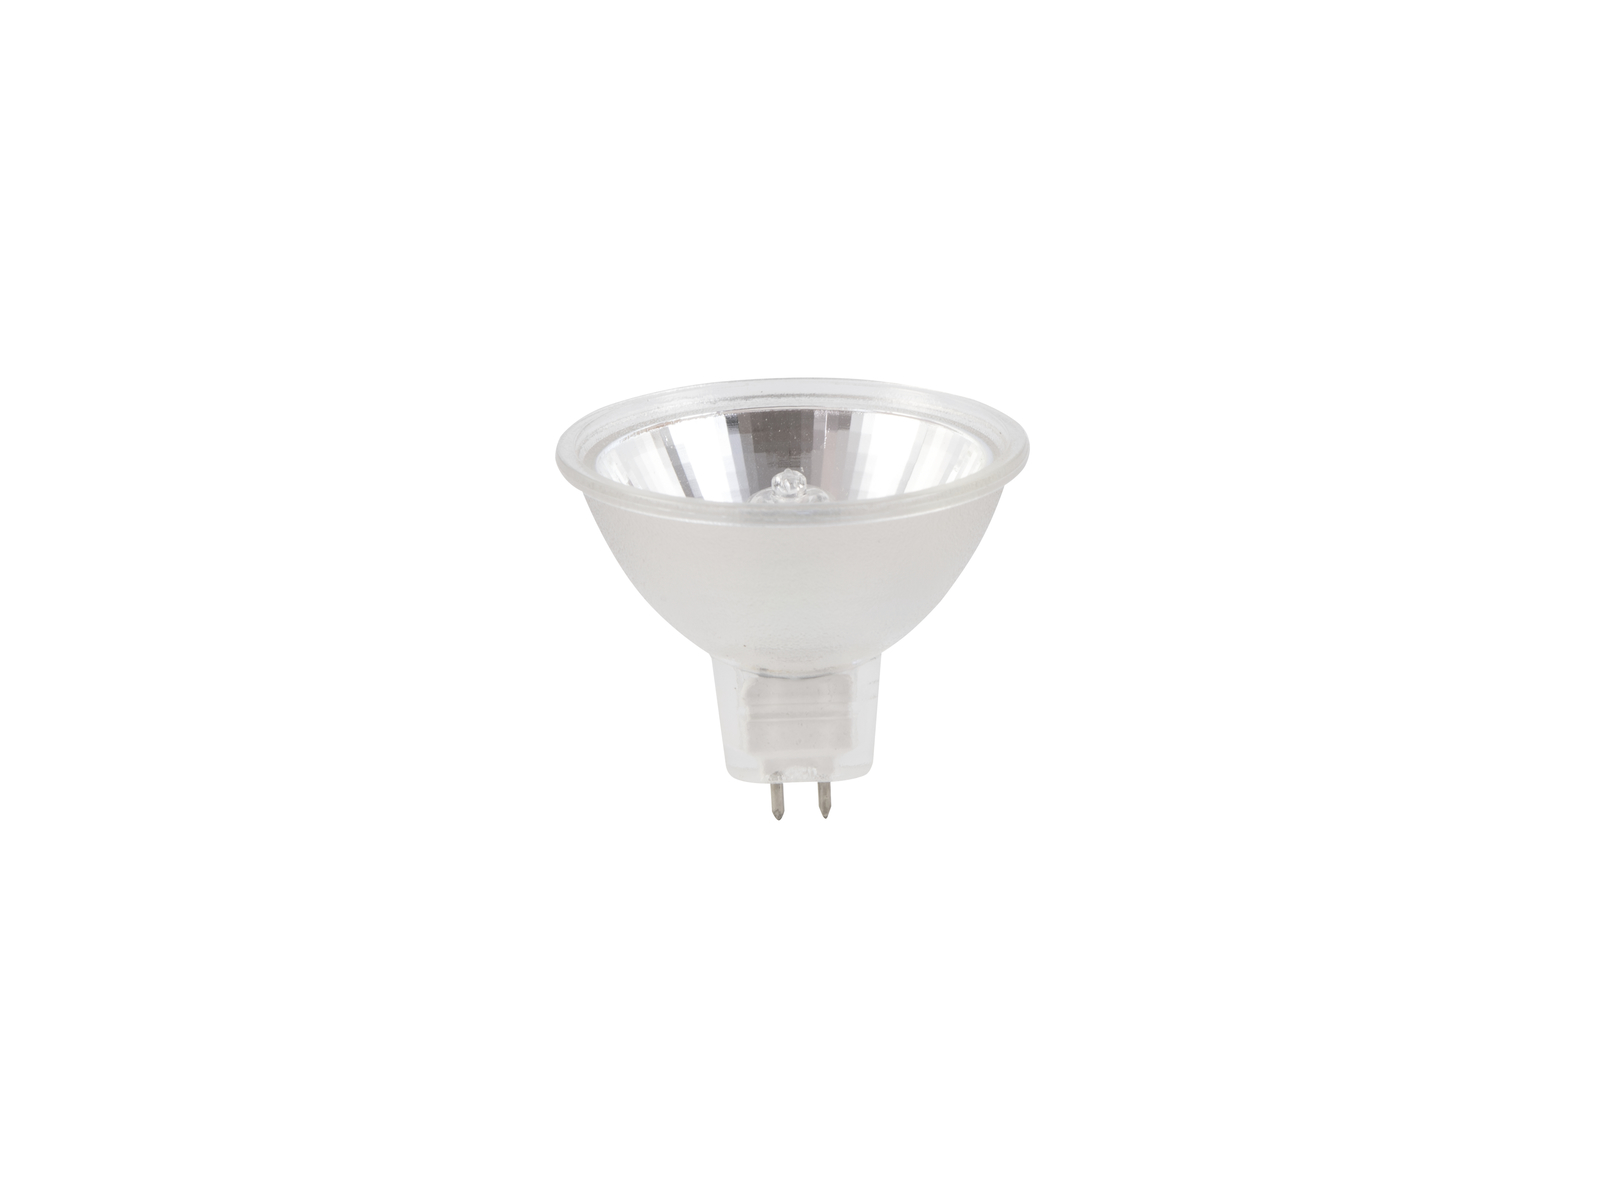 OMNILUX MR-16 24V/50W GX 5.3 SP 12° FORUM